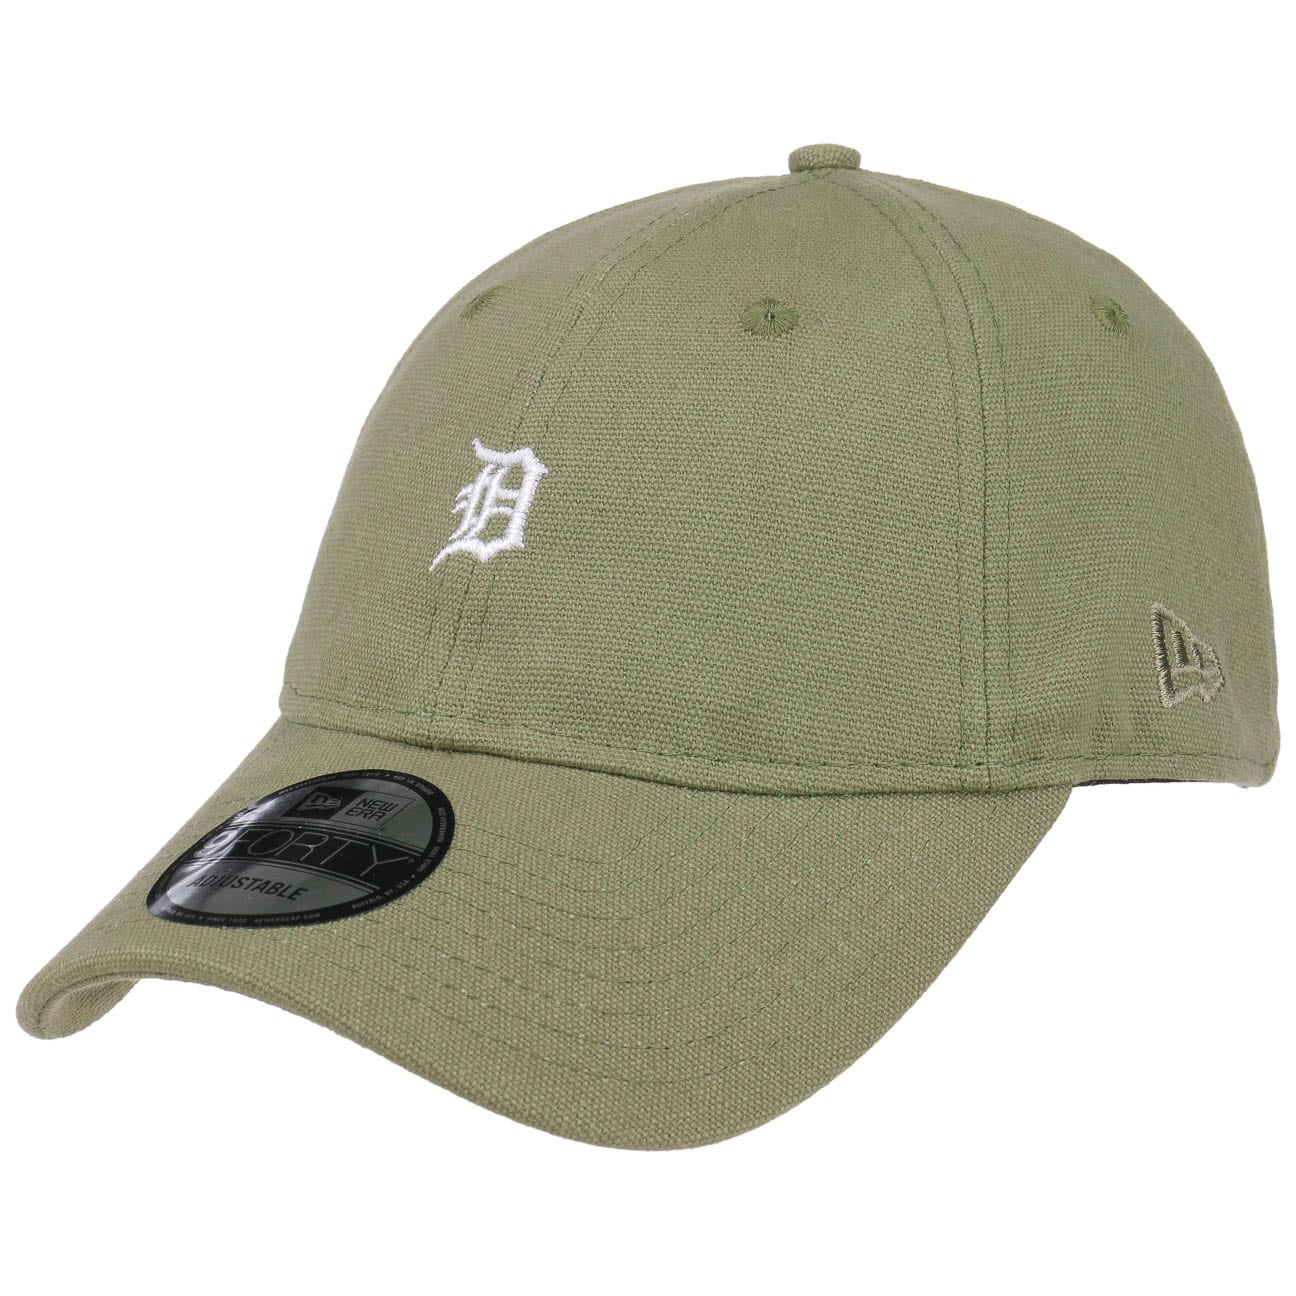 9forty-canvas-tigers-cap-by-new-era-basecap